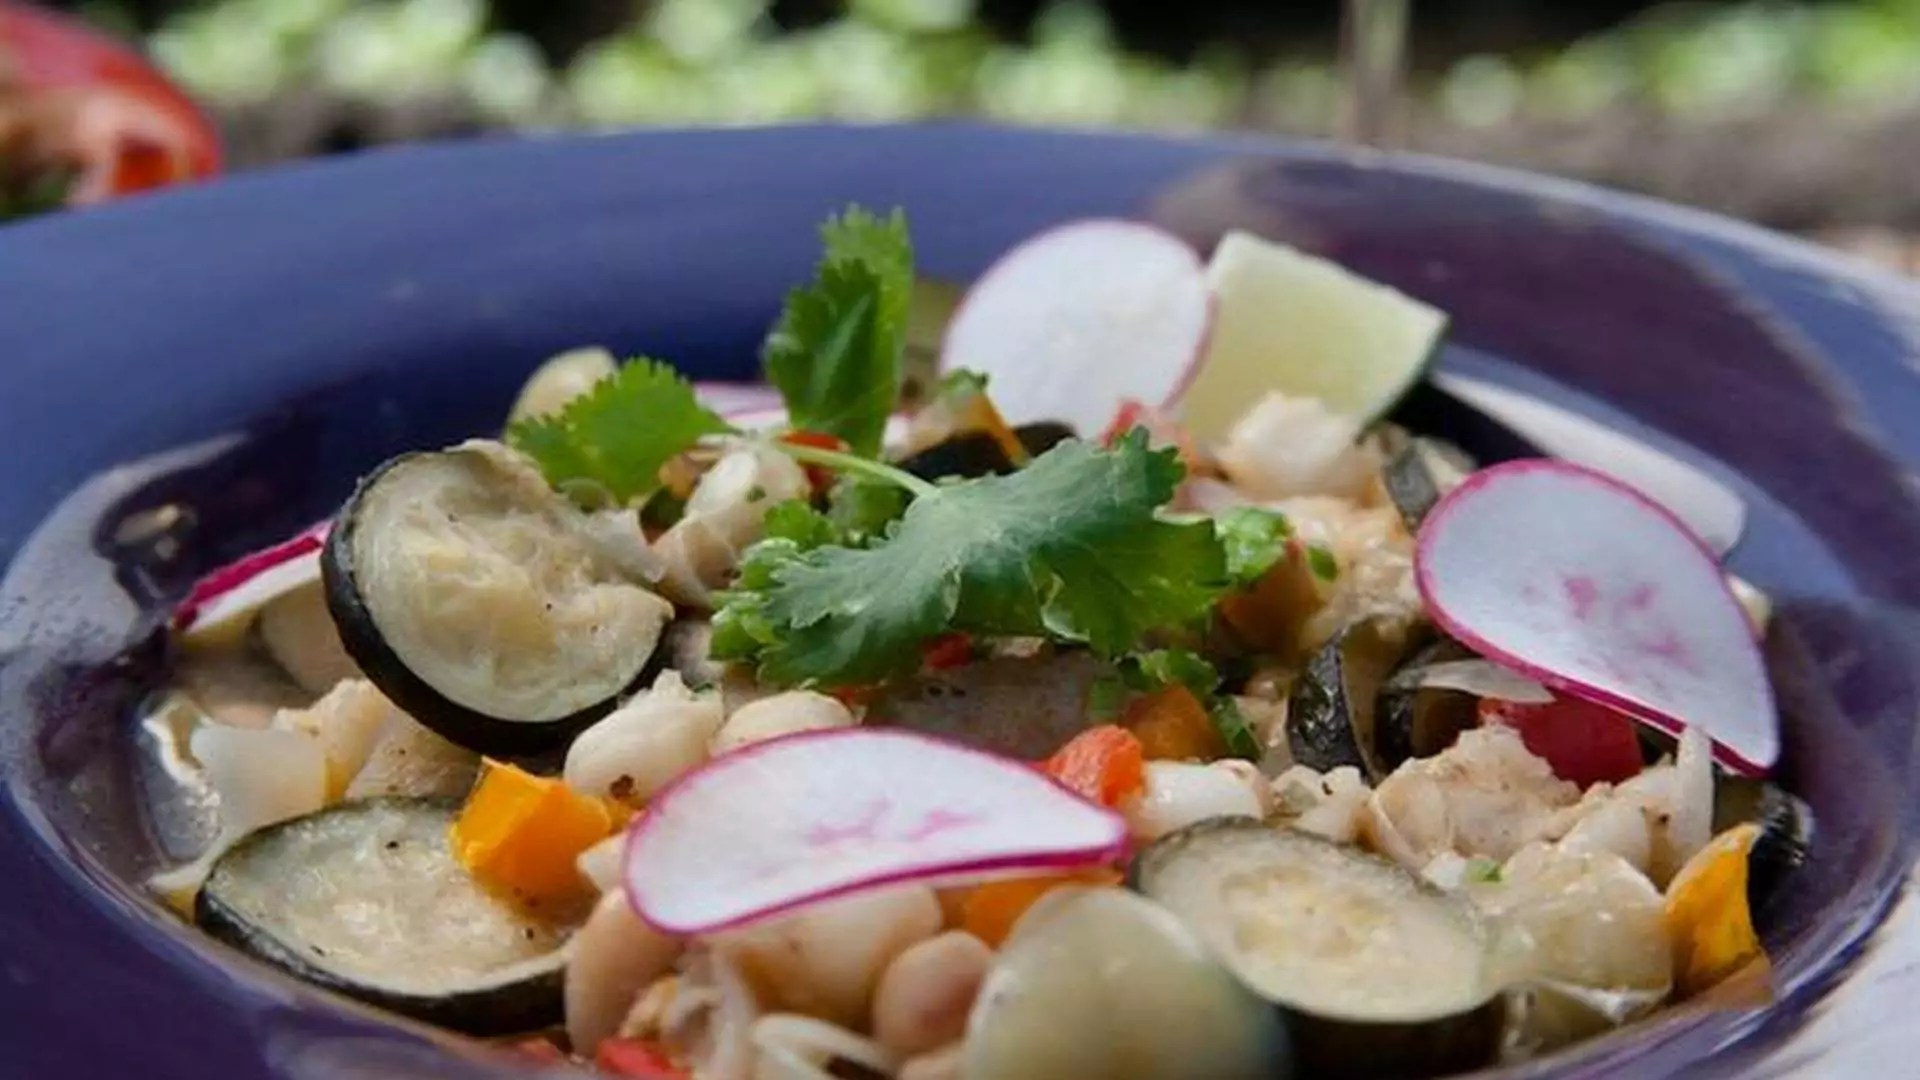 Close-up of a dish including mint, radishes, pasta, and more.